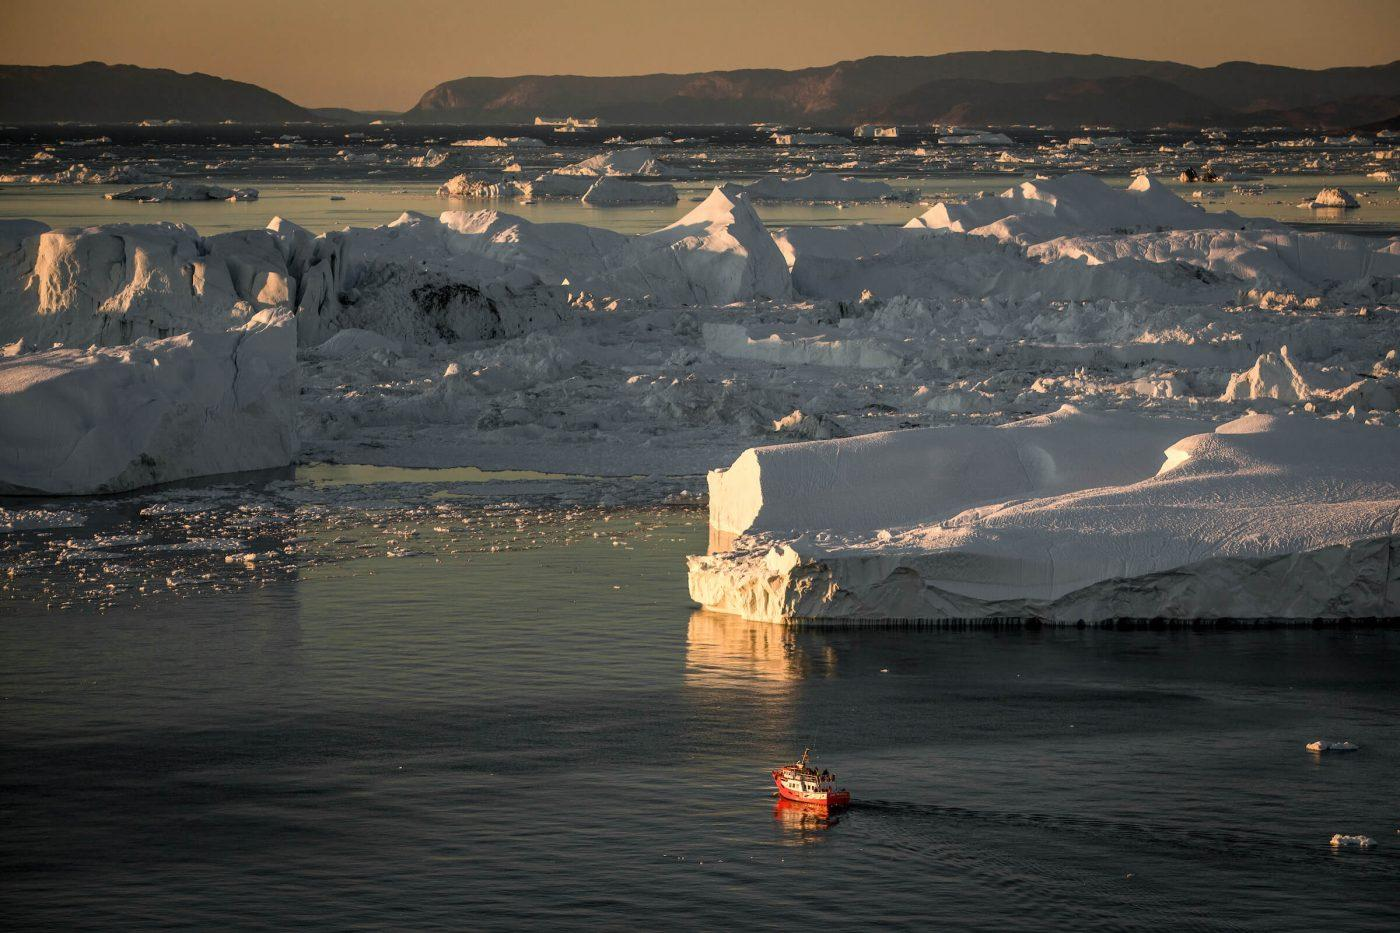 A small passenger boat near the big icebergs at Ilulissat ice fjord in Greenland. Photo by Mads Pihl